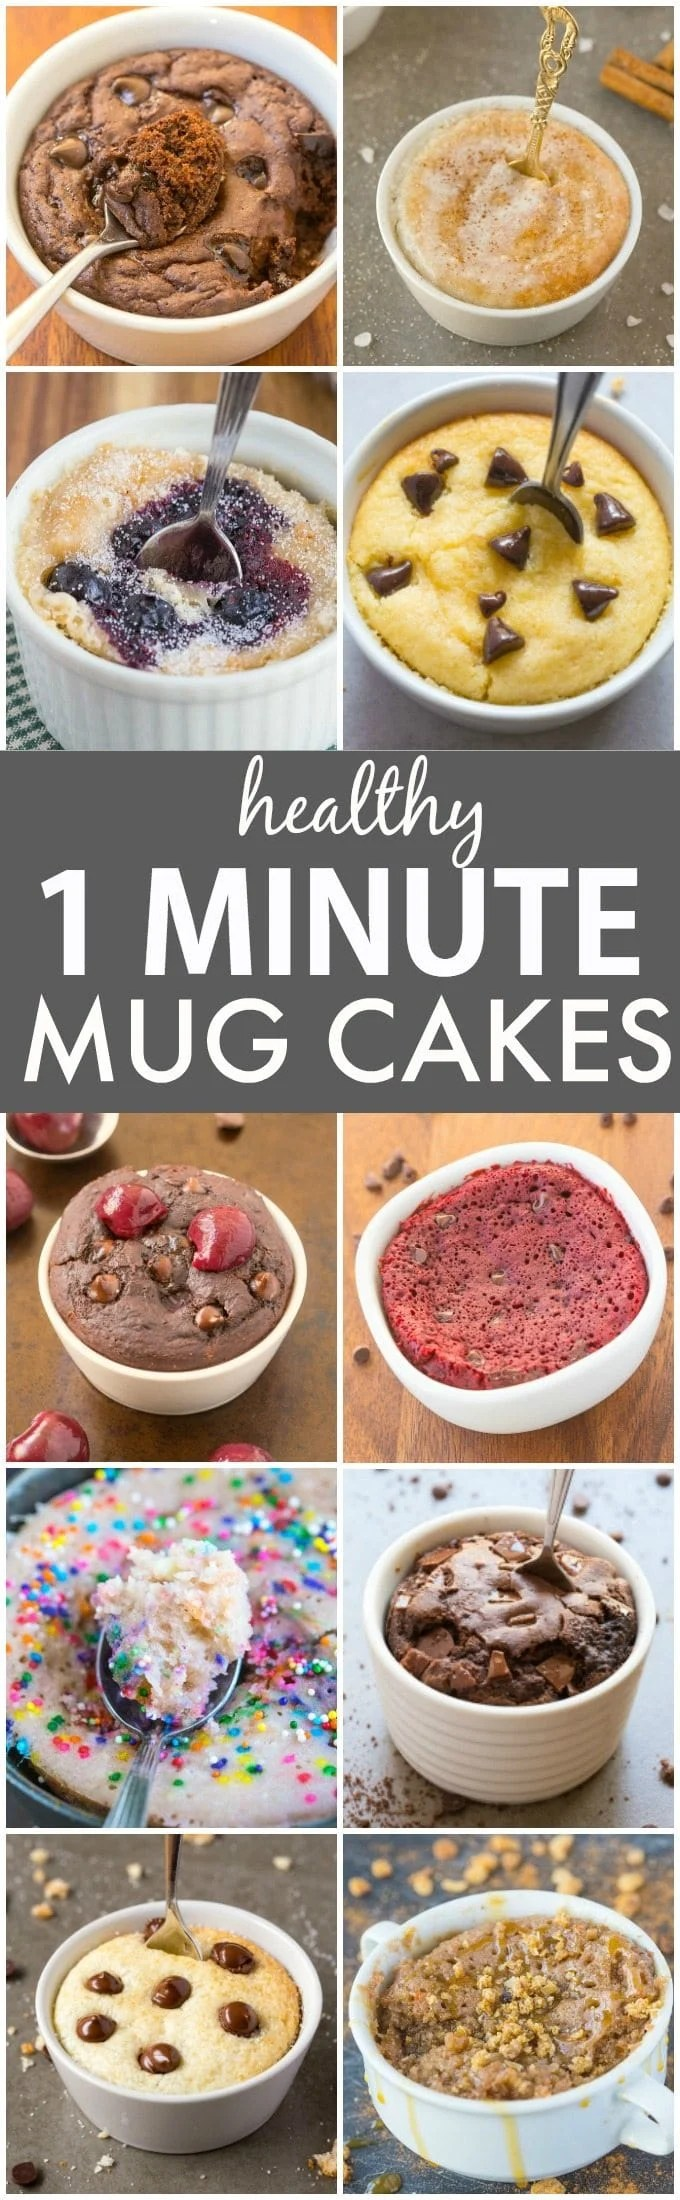 The Best Clean Eating Healthy 1 Minute Mug Cakes and Muffins